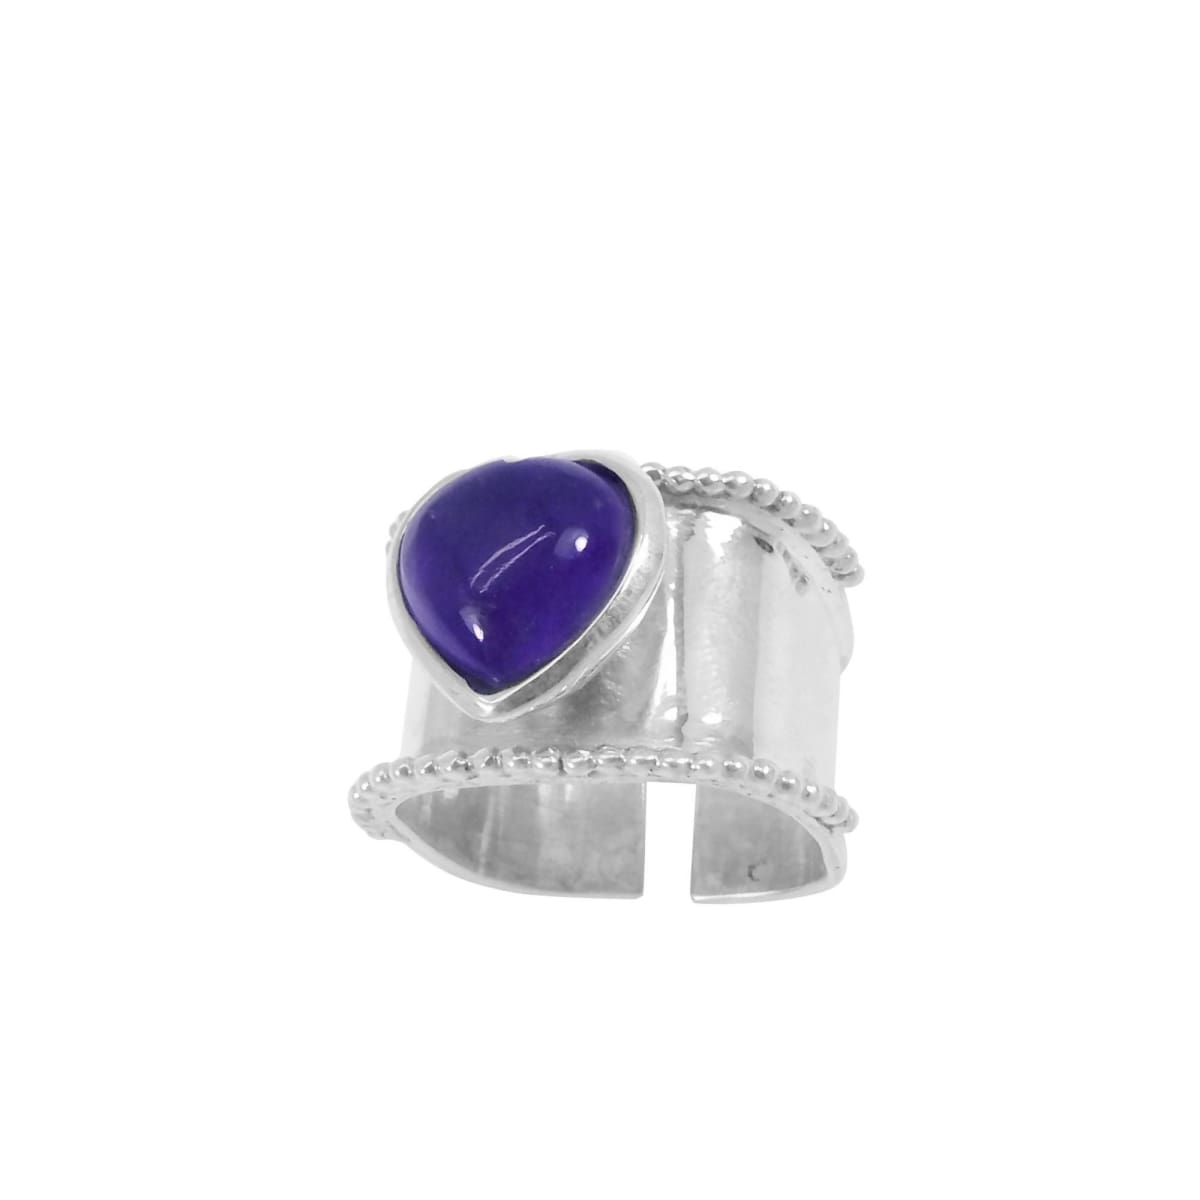 Rings Amethyst Heart Shaped 925 Sterling Silver Wide Band Adjustable Ring